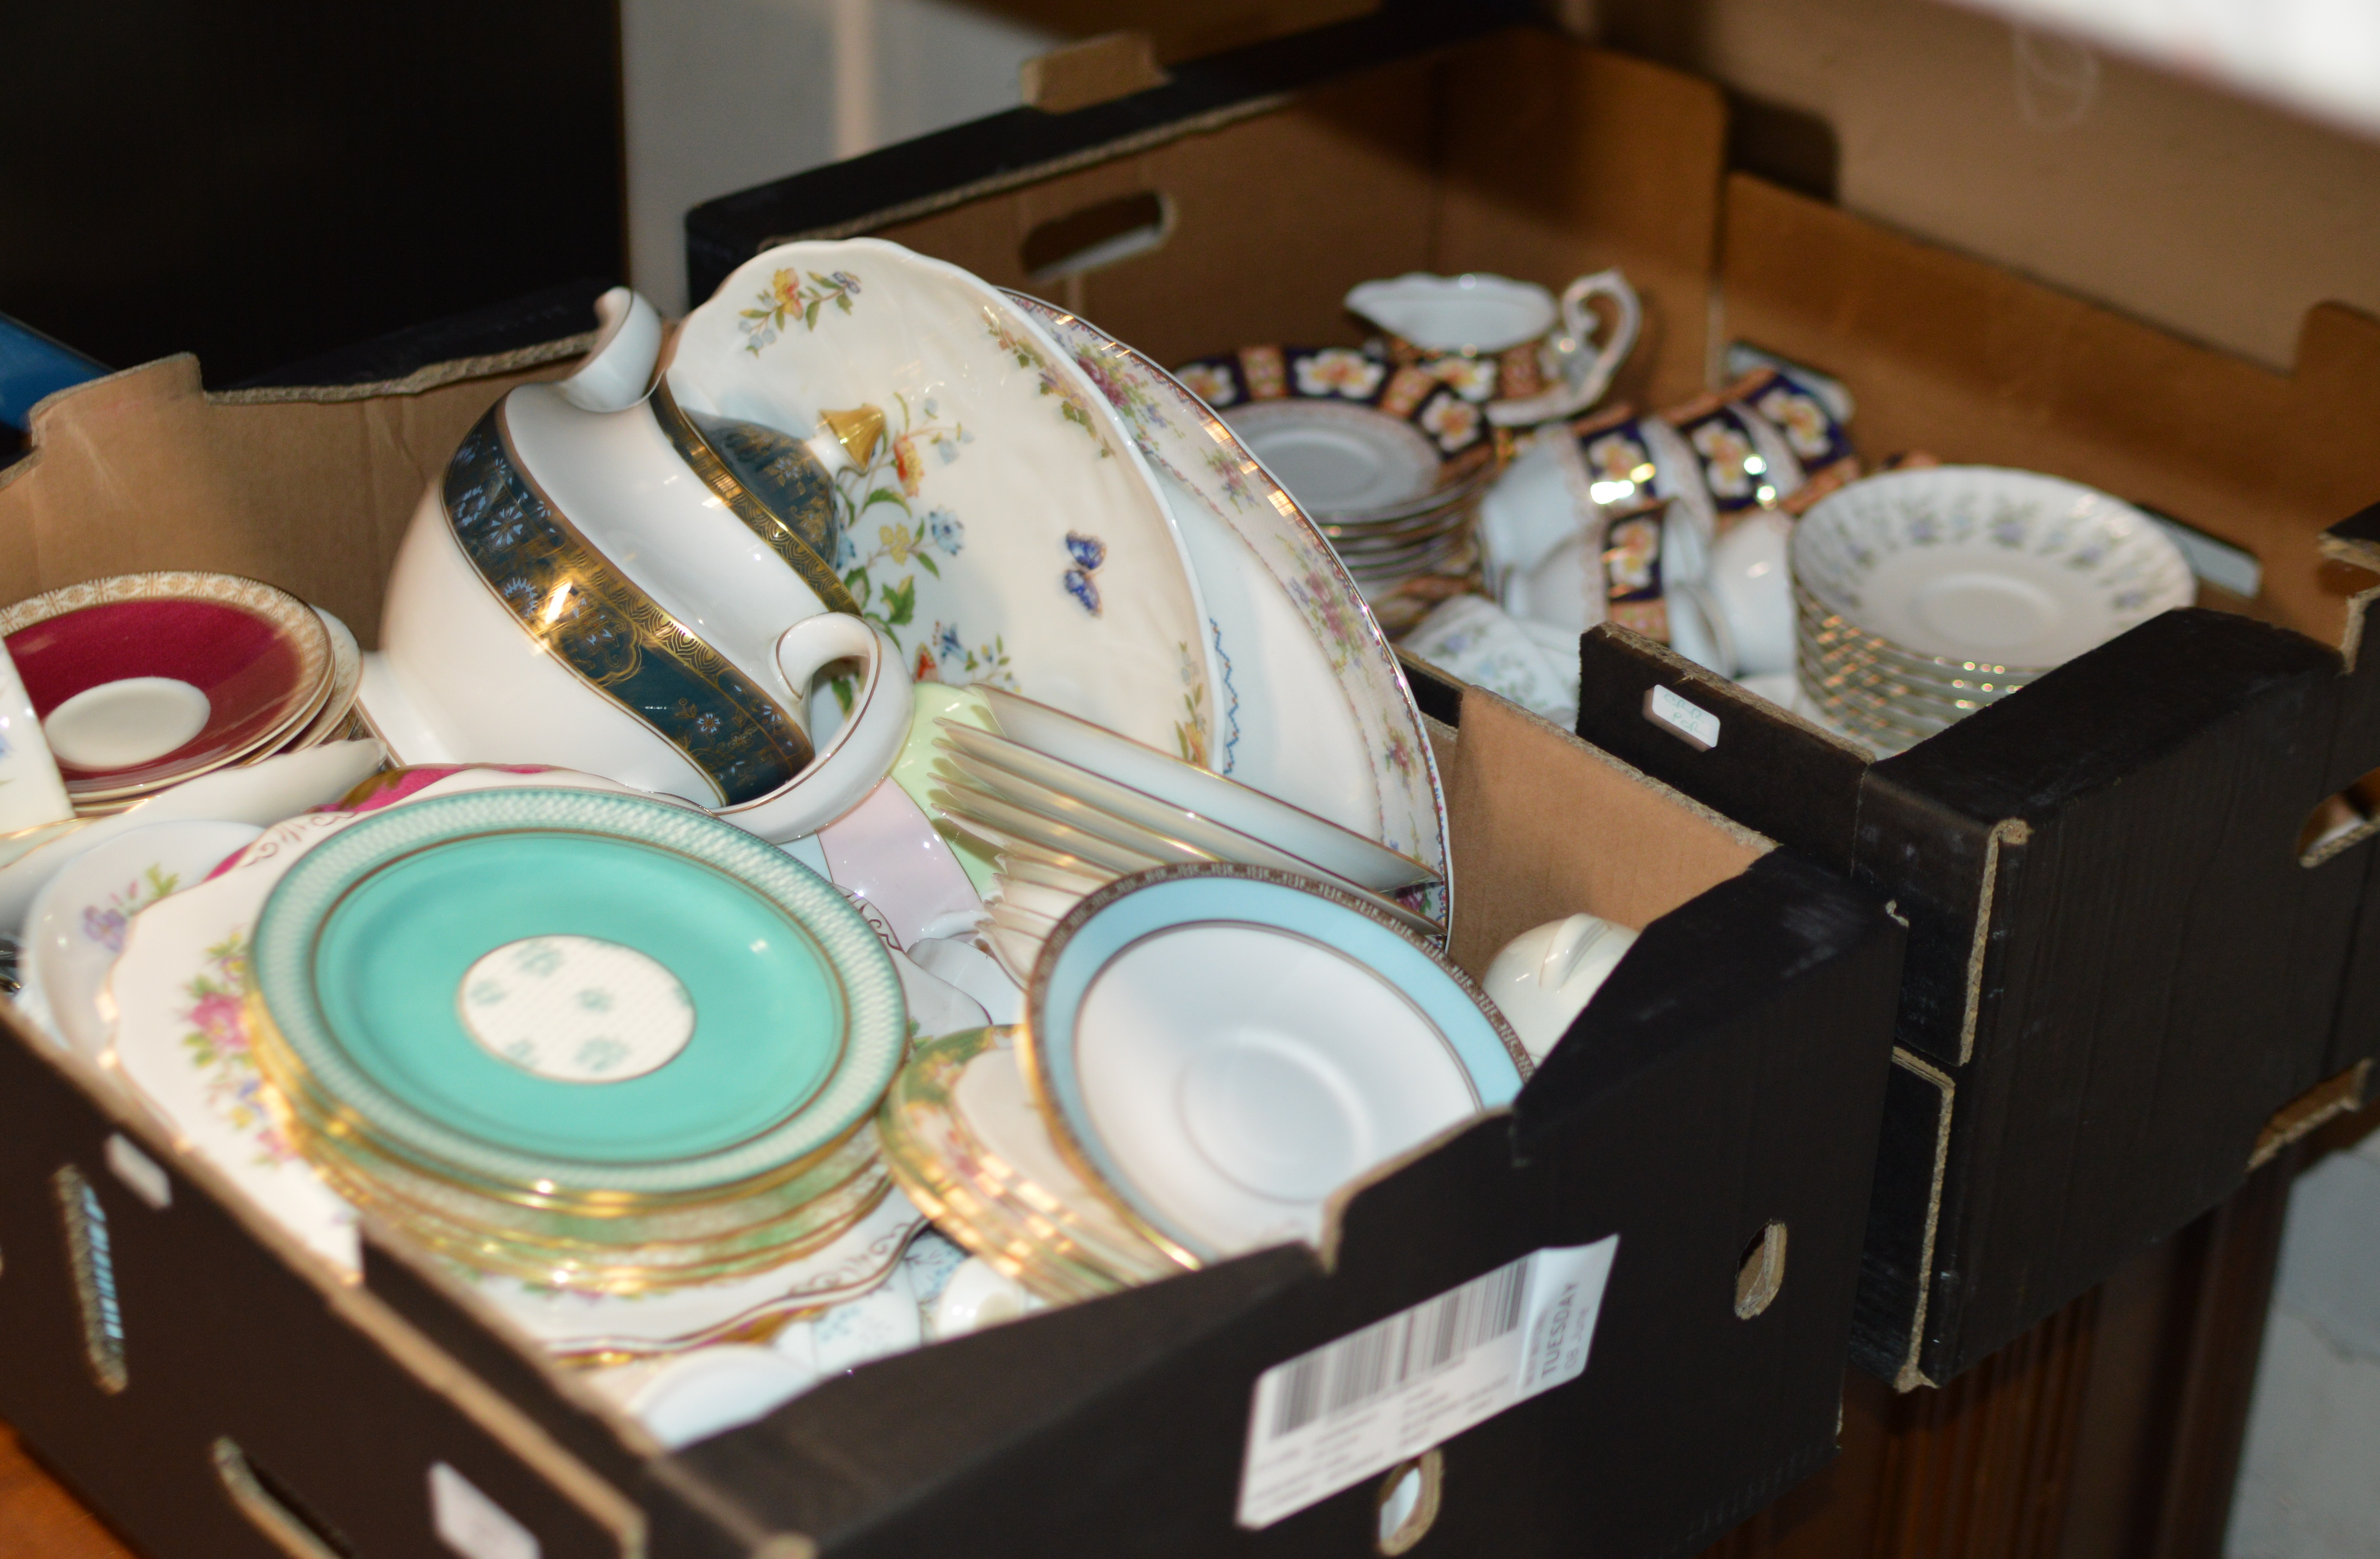 2 BOXES WITH ASSORTED TEA WARE